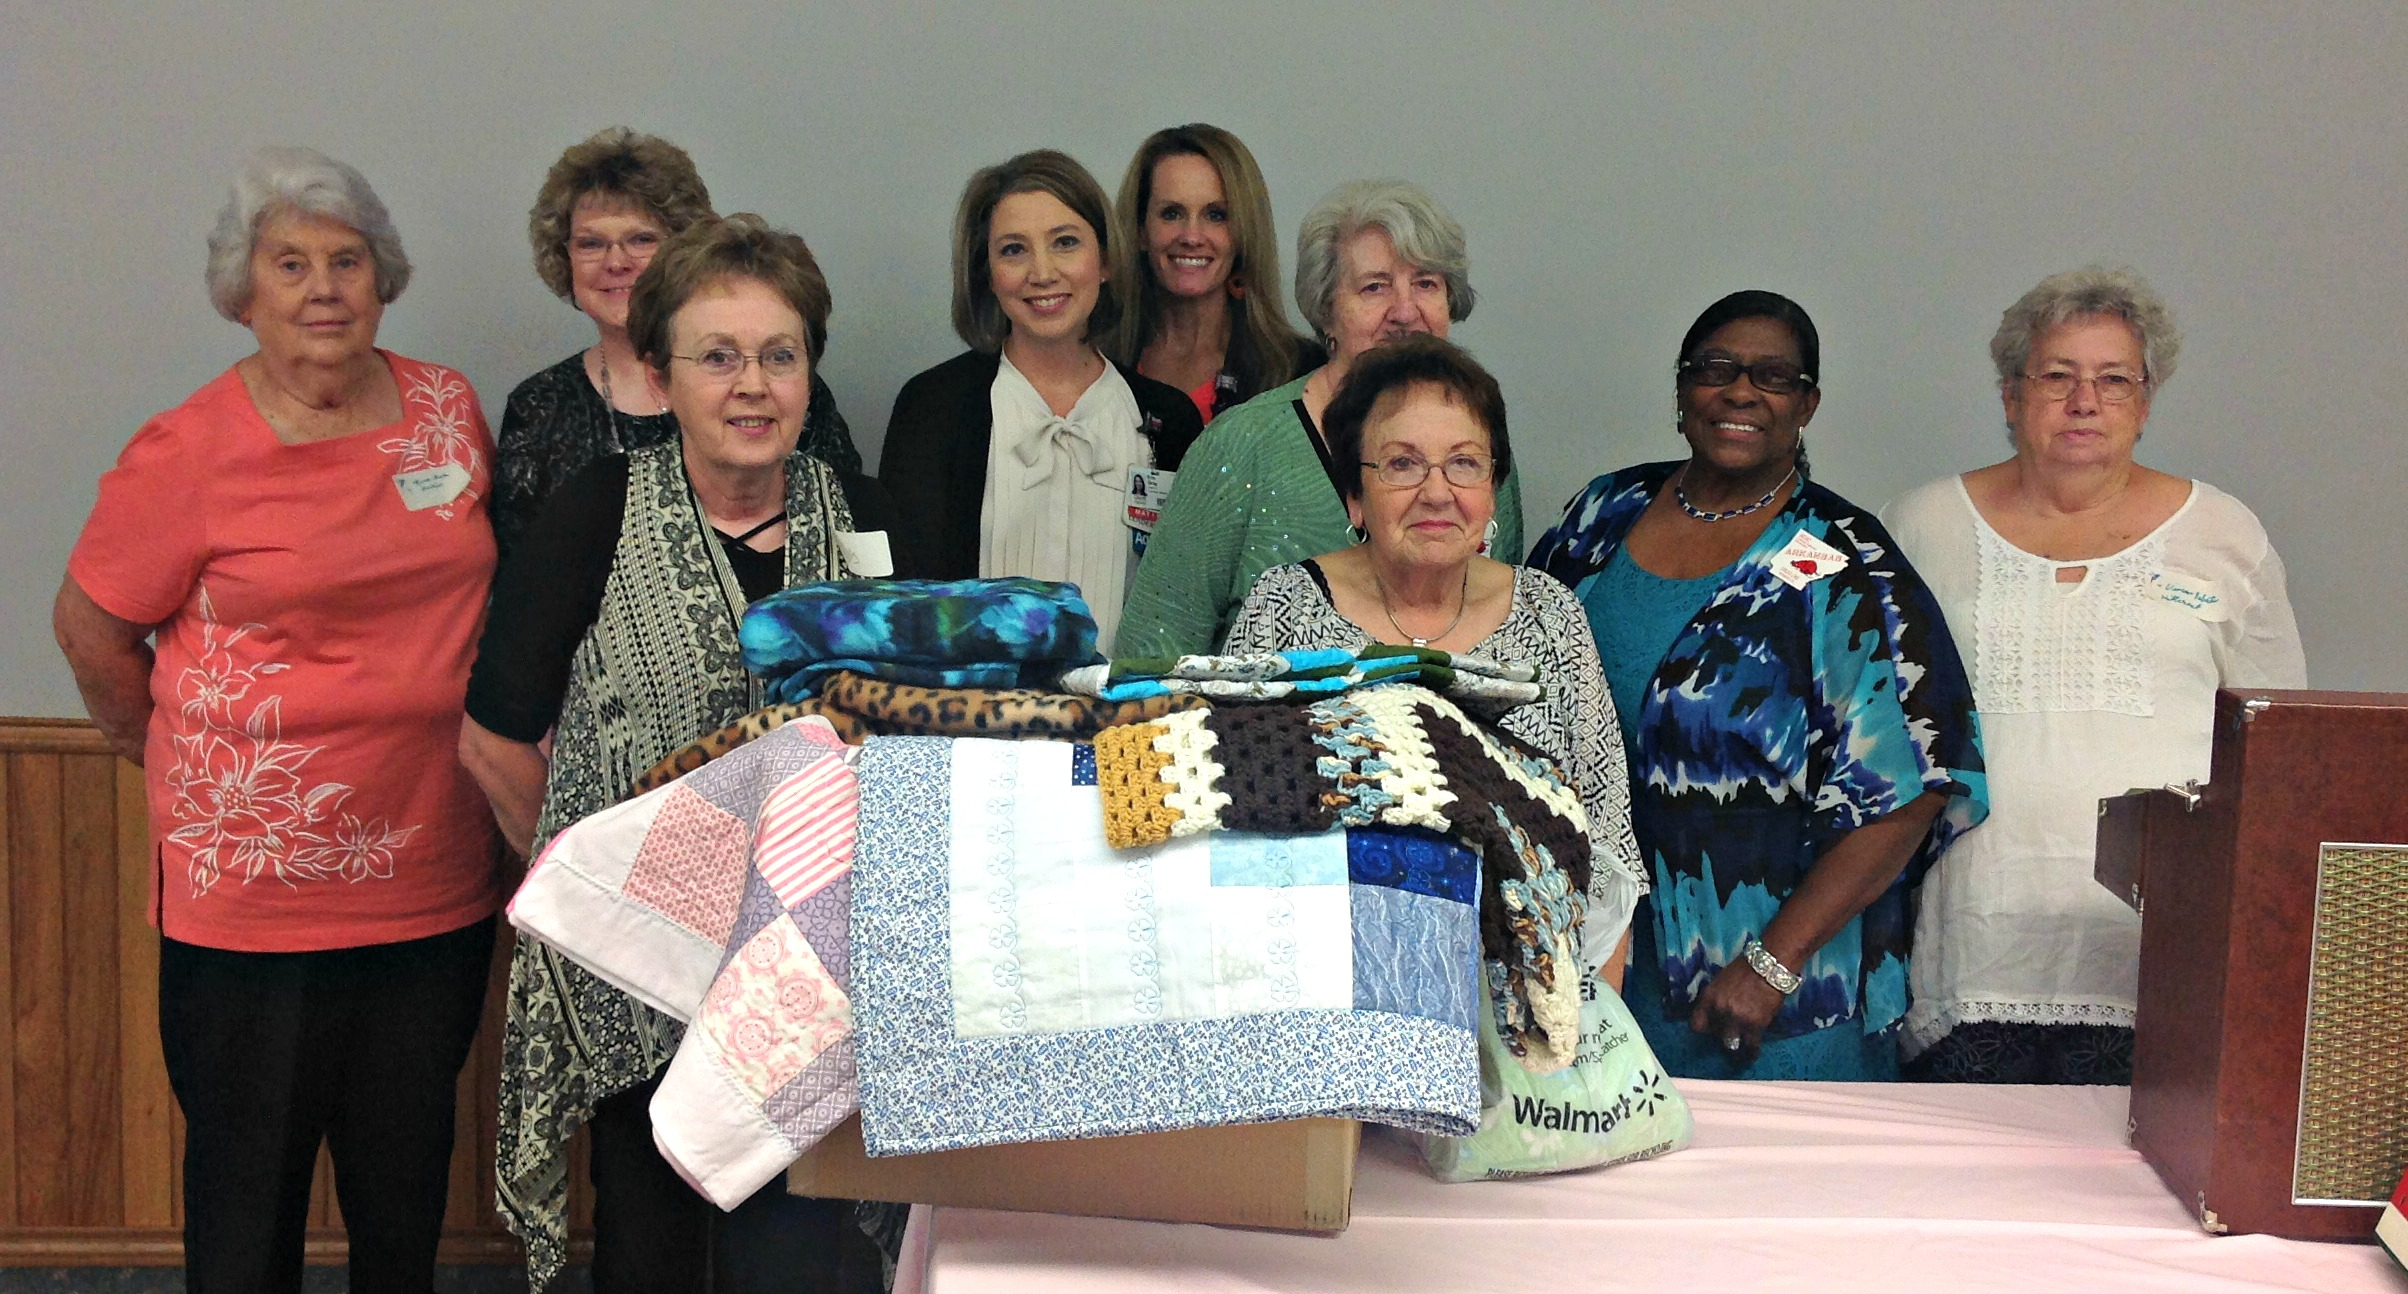 Nine ladies standing behind a table with a box filled with quilts.